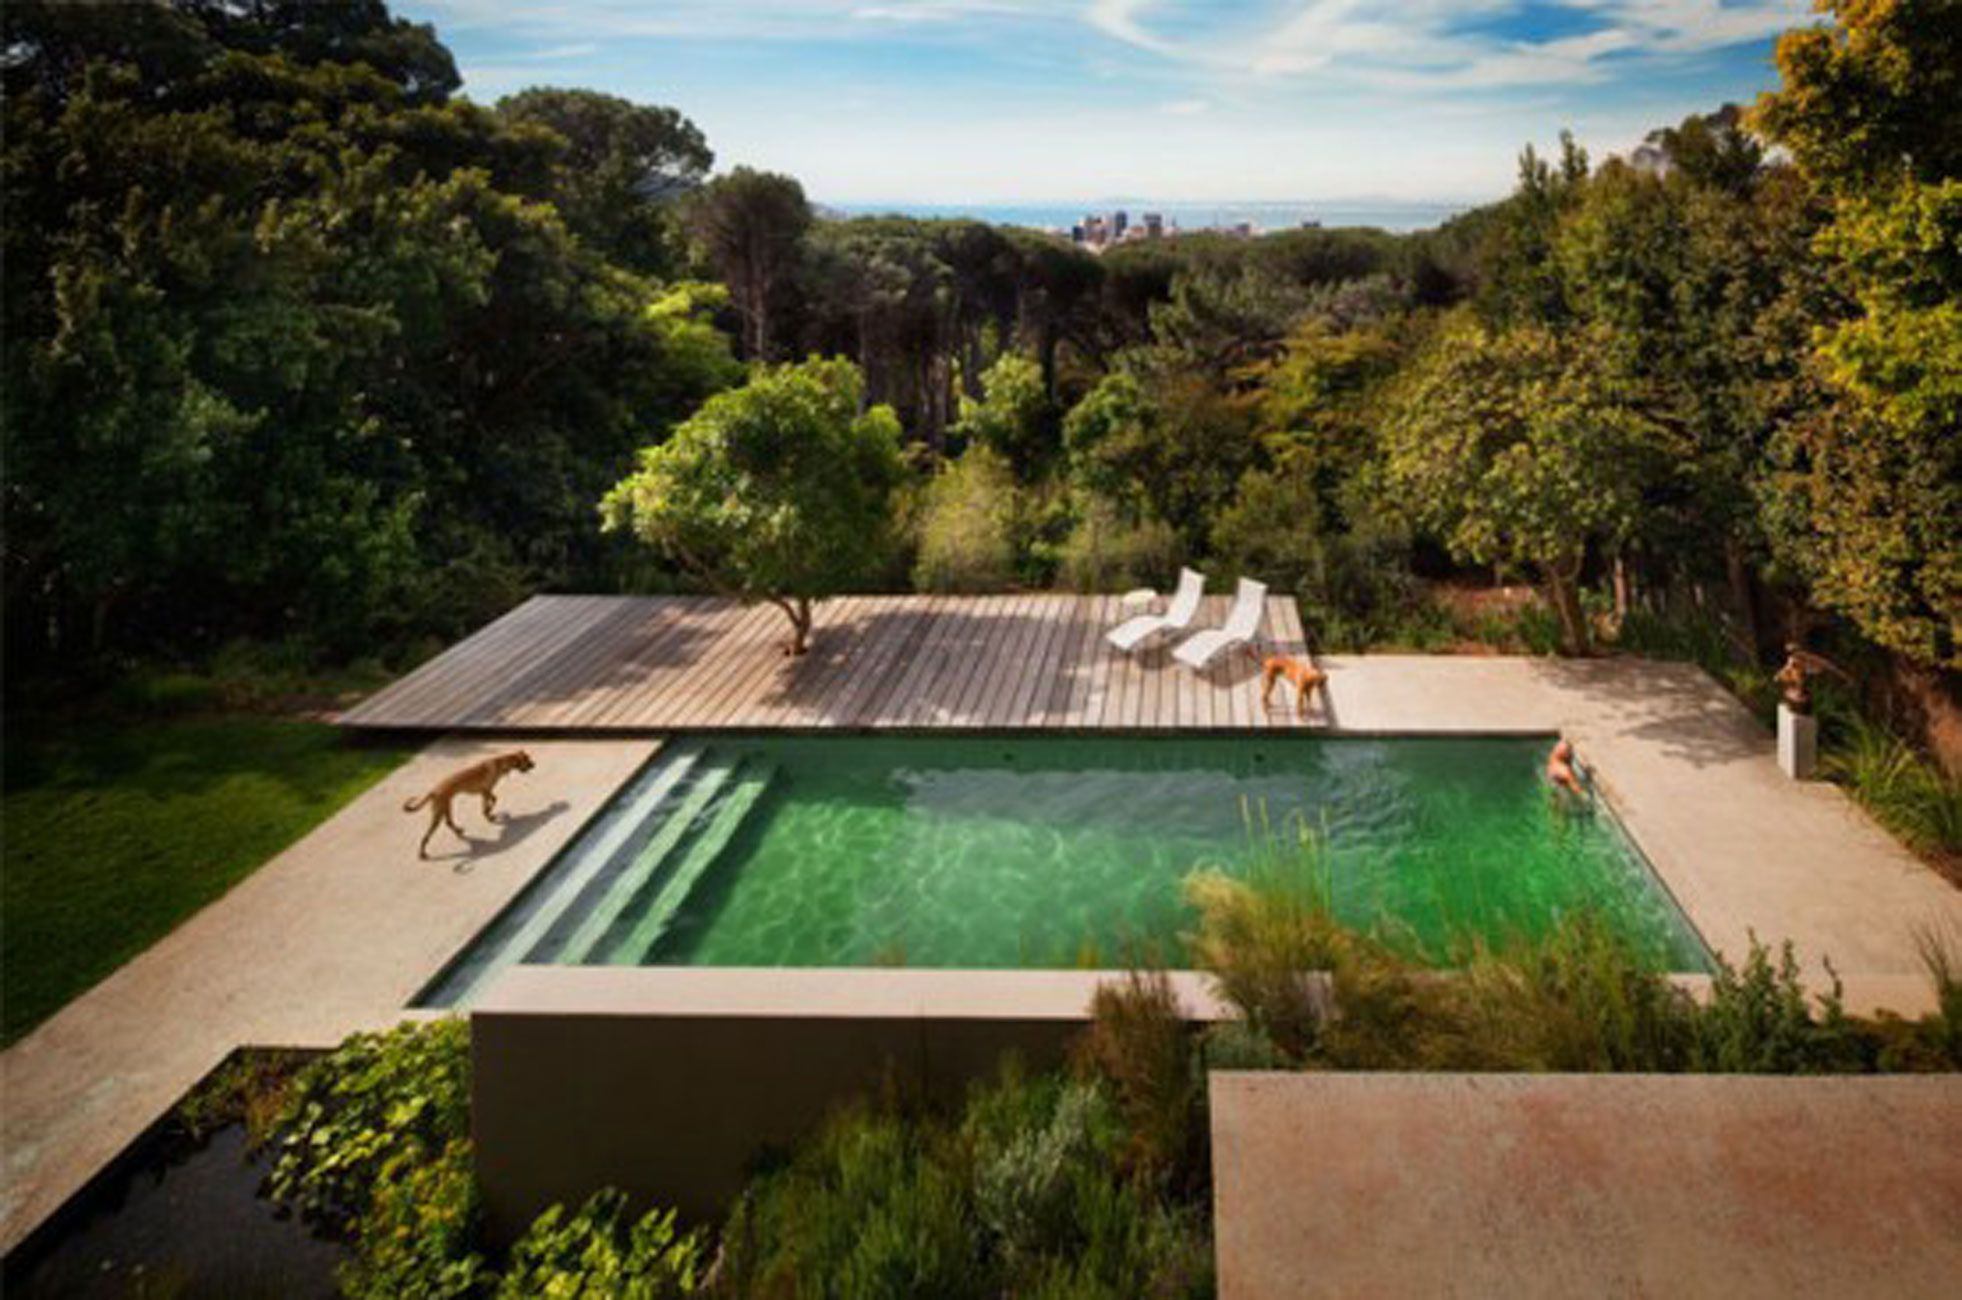 Popular Style > House Architecture In South Africa An Award Winner South African Institute Of Architects. 125 times like by user South Africa Buildings South African Institute of Architects Truck Stops South Africa, author Lucas Campbell.